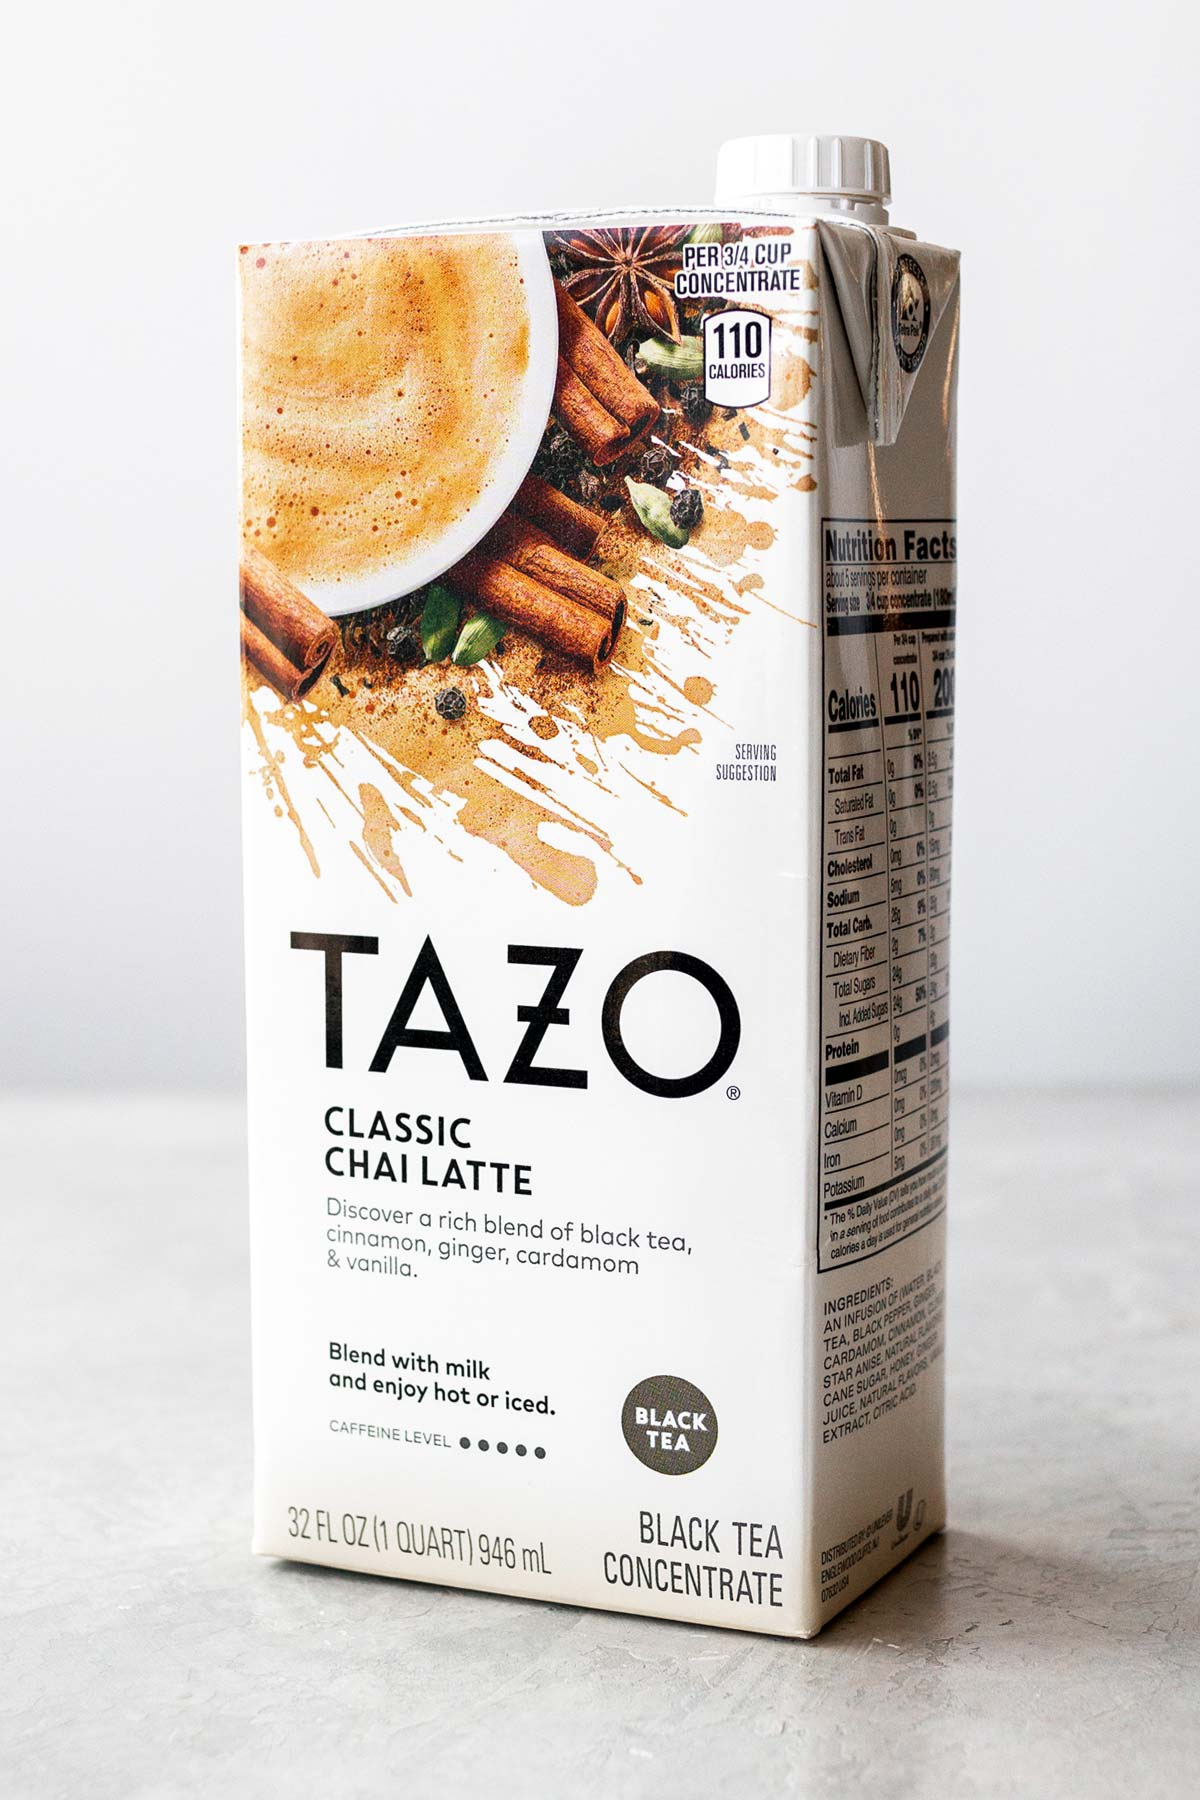 Tazo chai concentrate container.